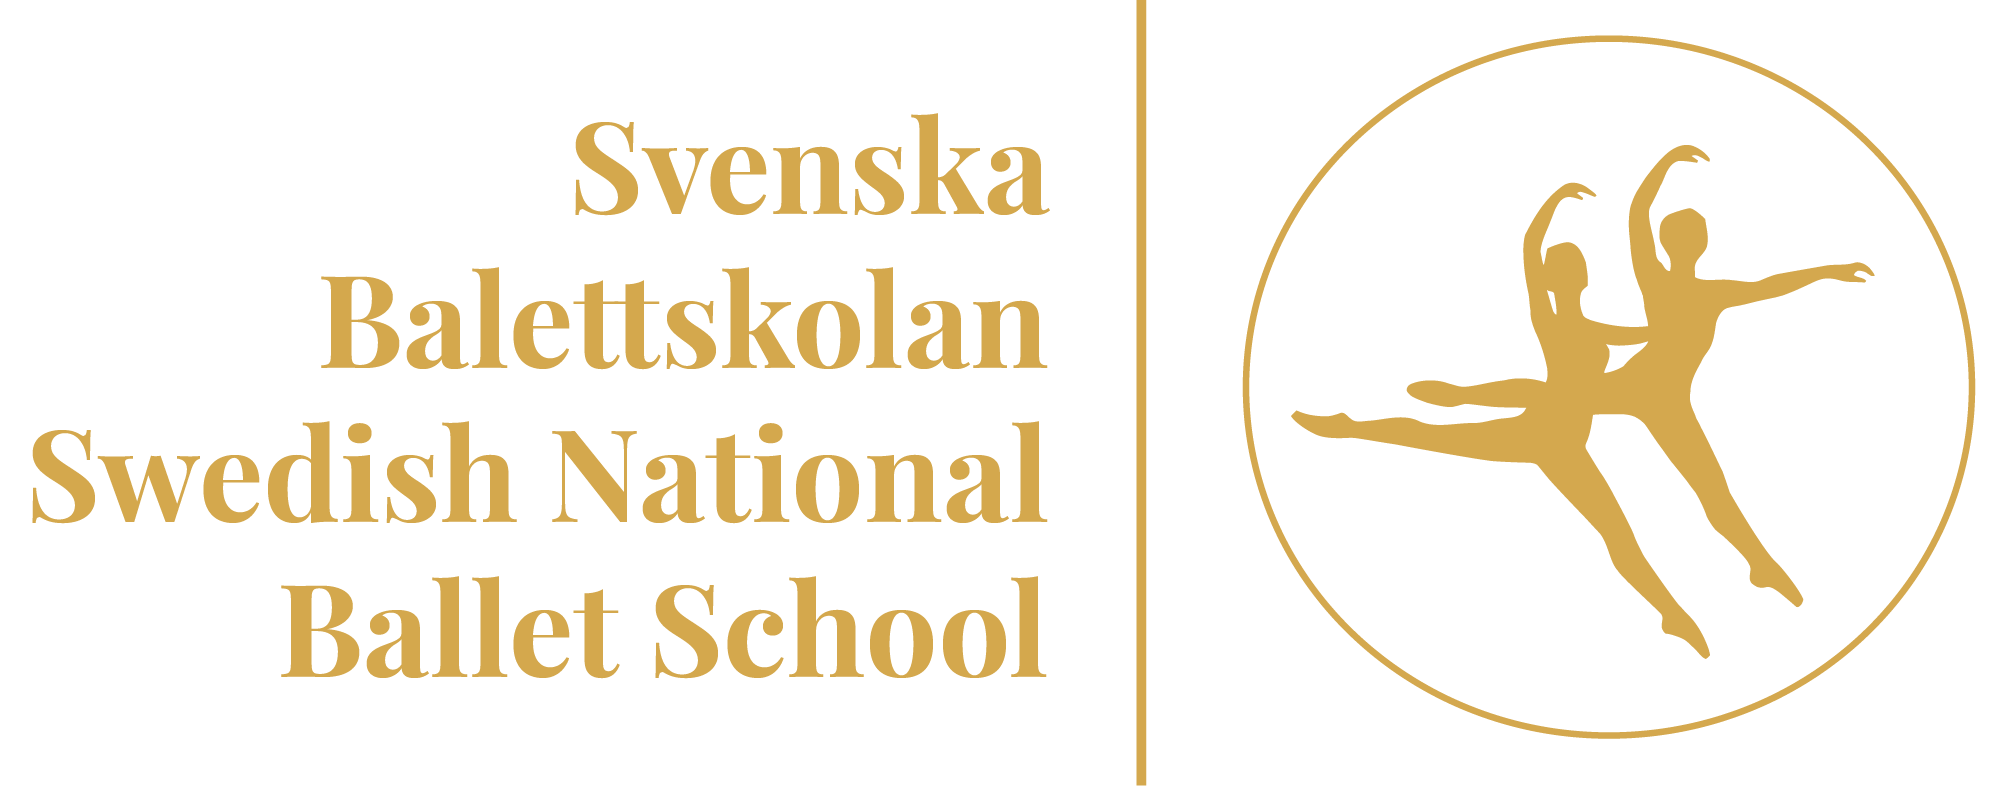 Svenska Balettskolan, Swedish National Ballet School